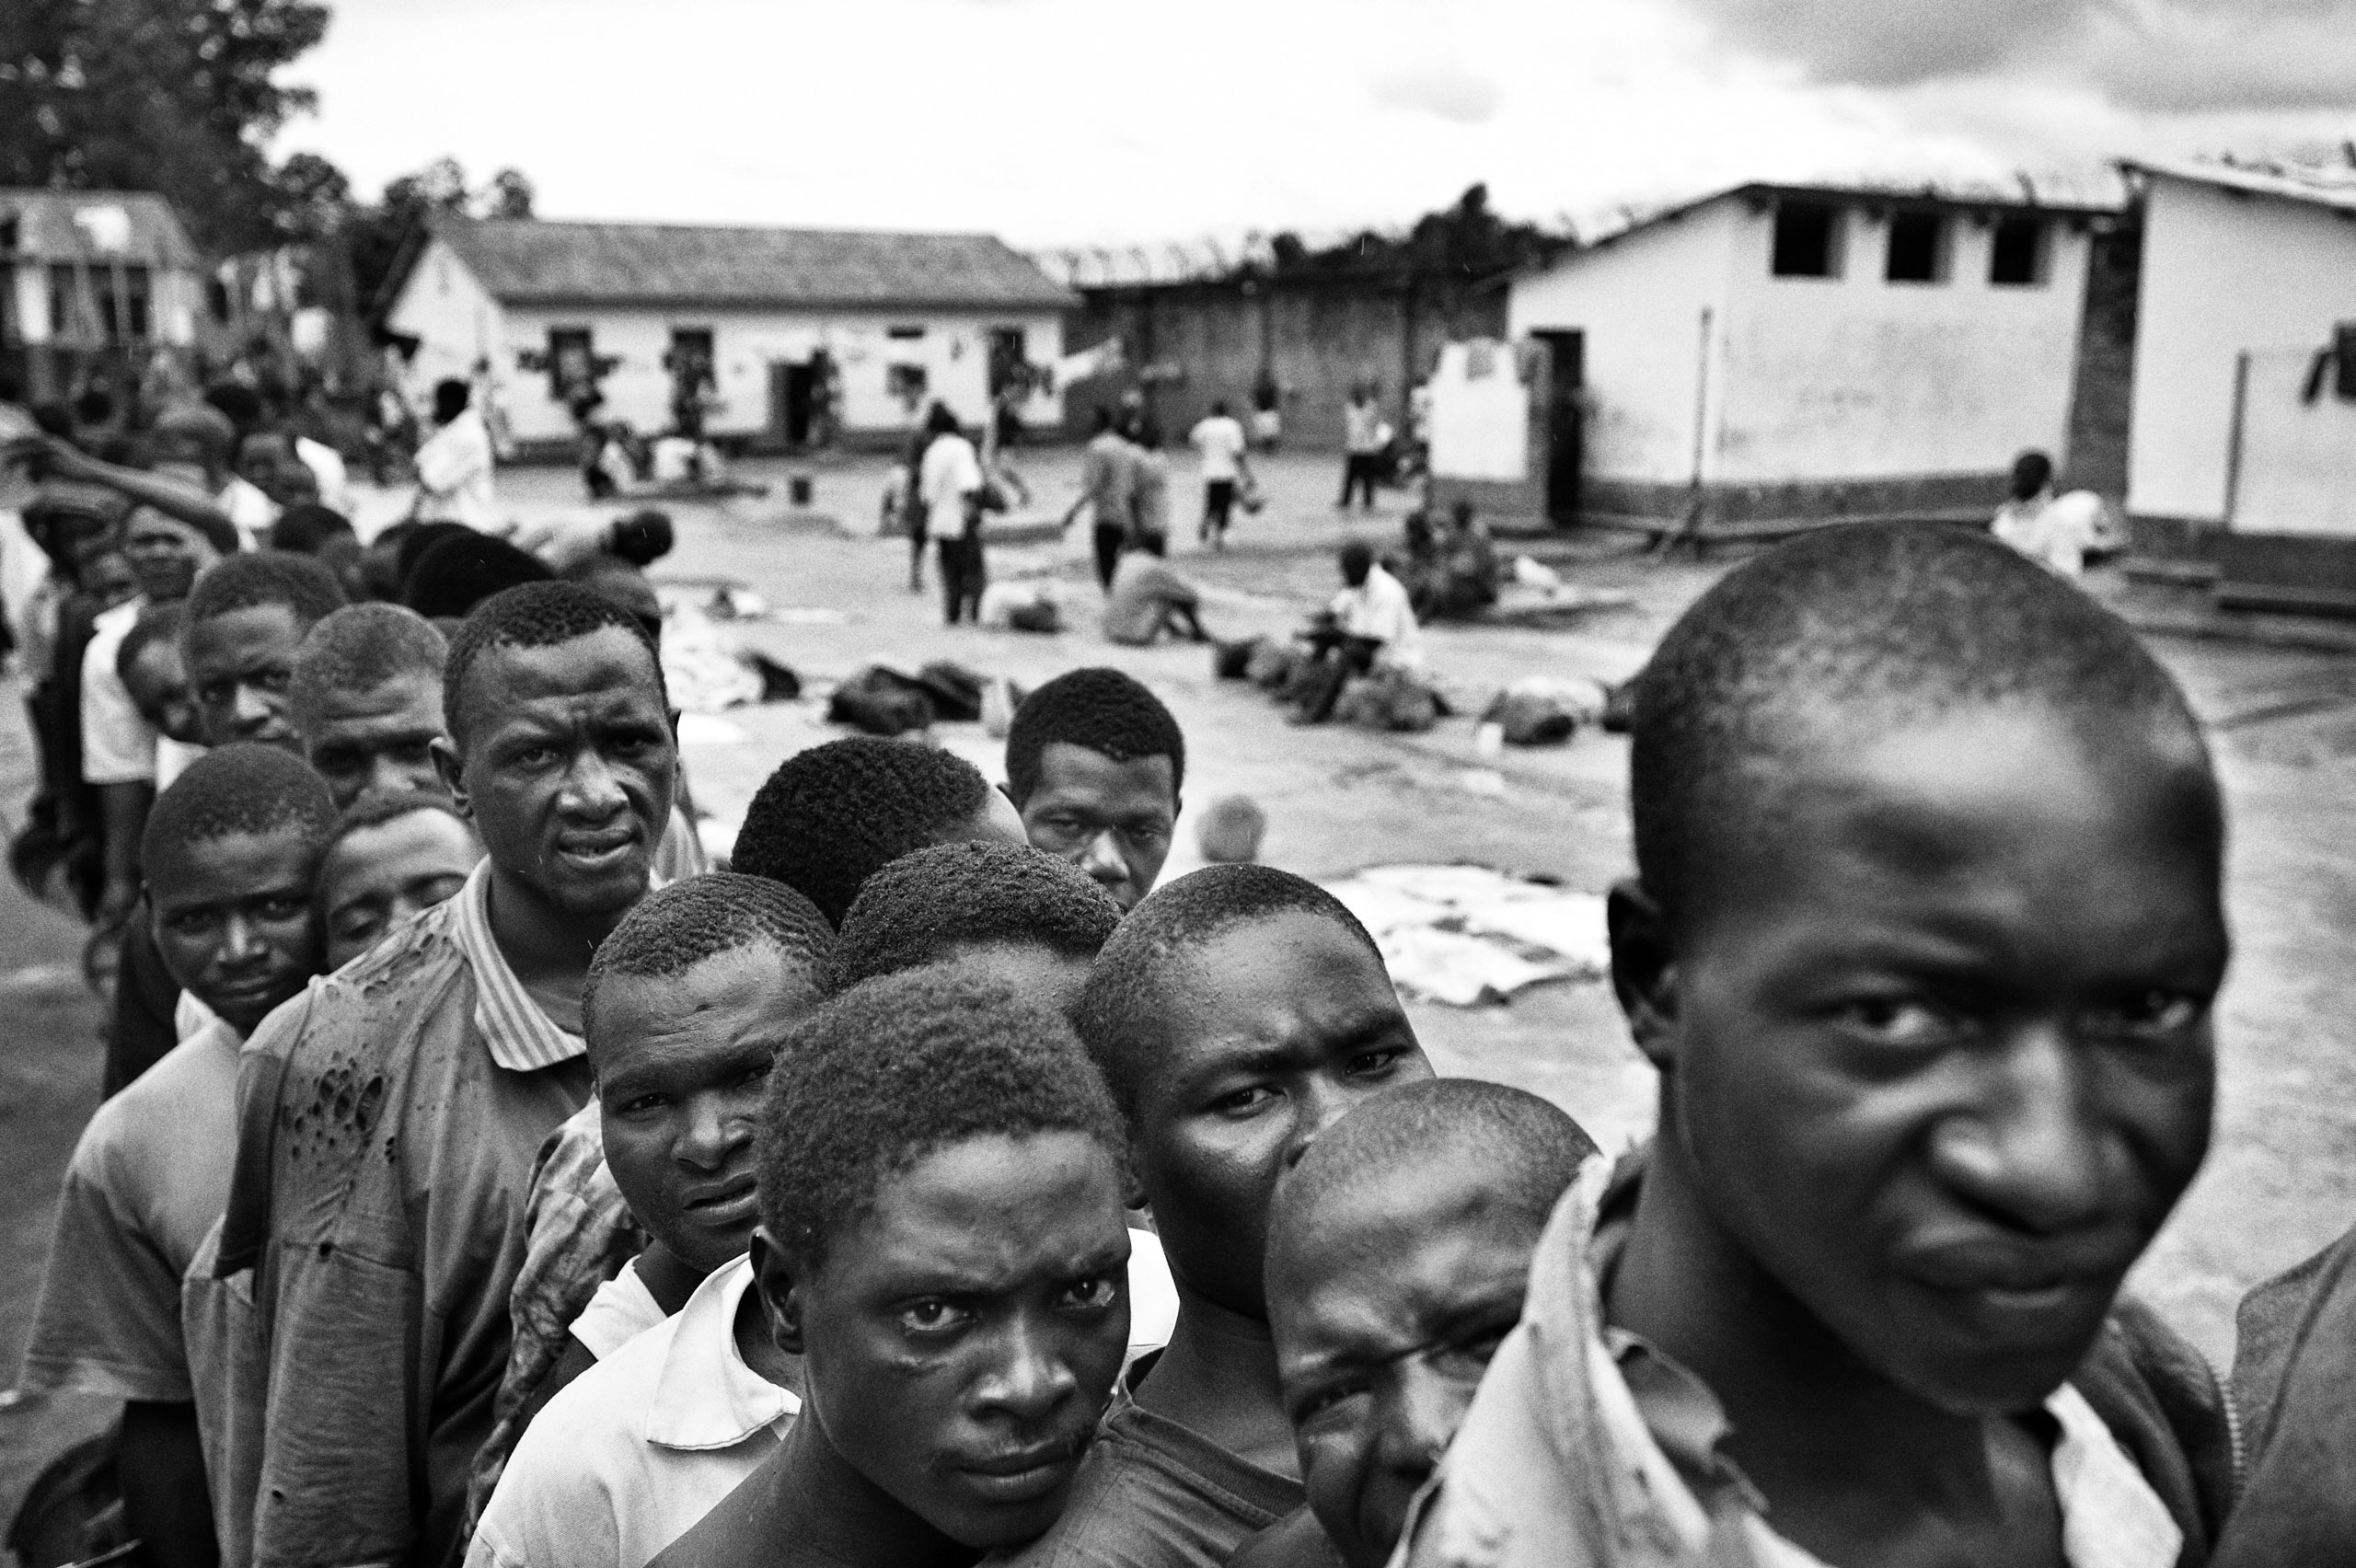 Inmates wait in line to receive food once a day in Mzuzu, Malawi.